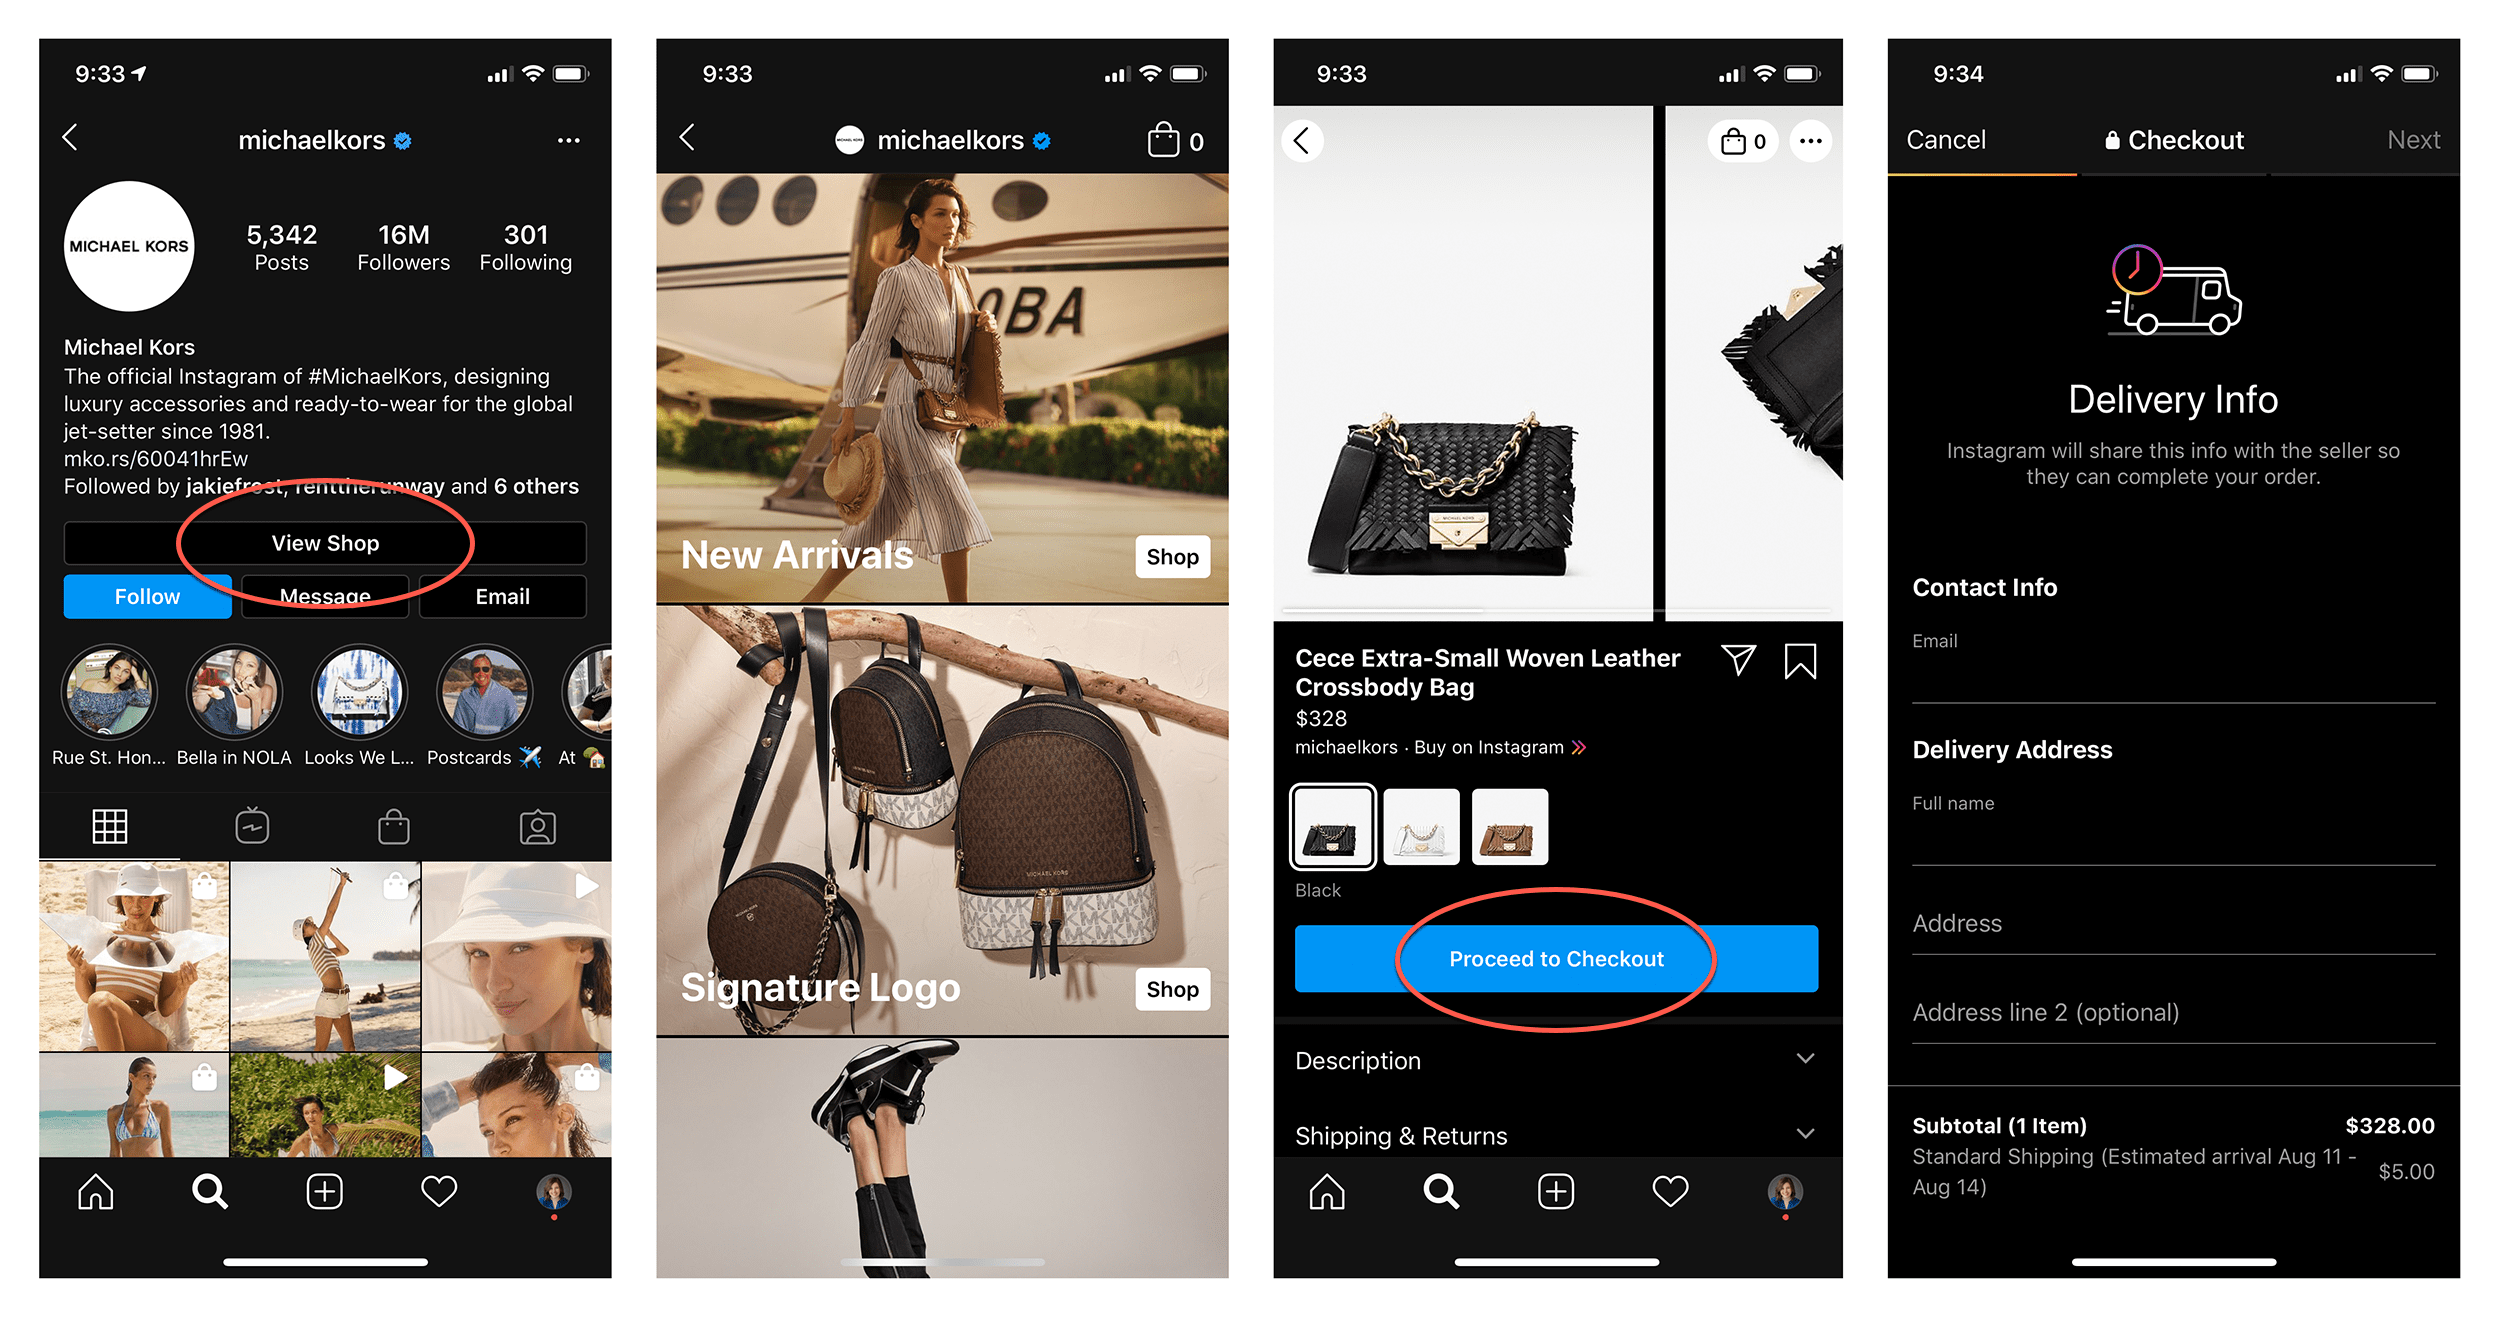 shoppable-posts-what-they-are-and-how-to-use-them Shoppable Posts: What They Are and How to Use Them